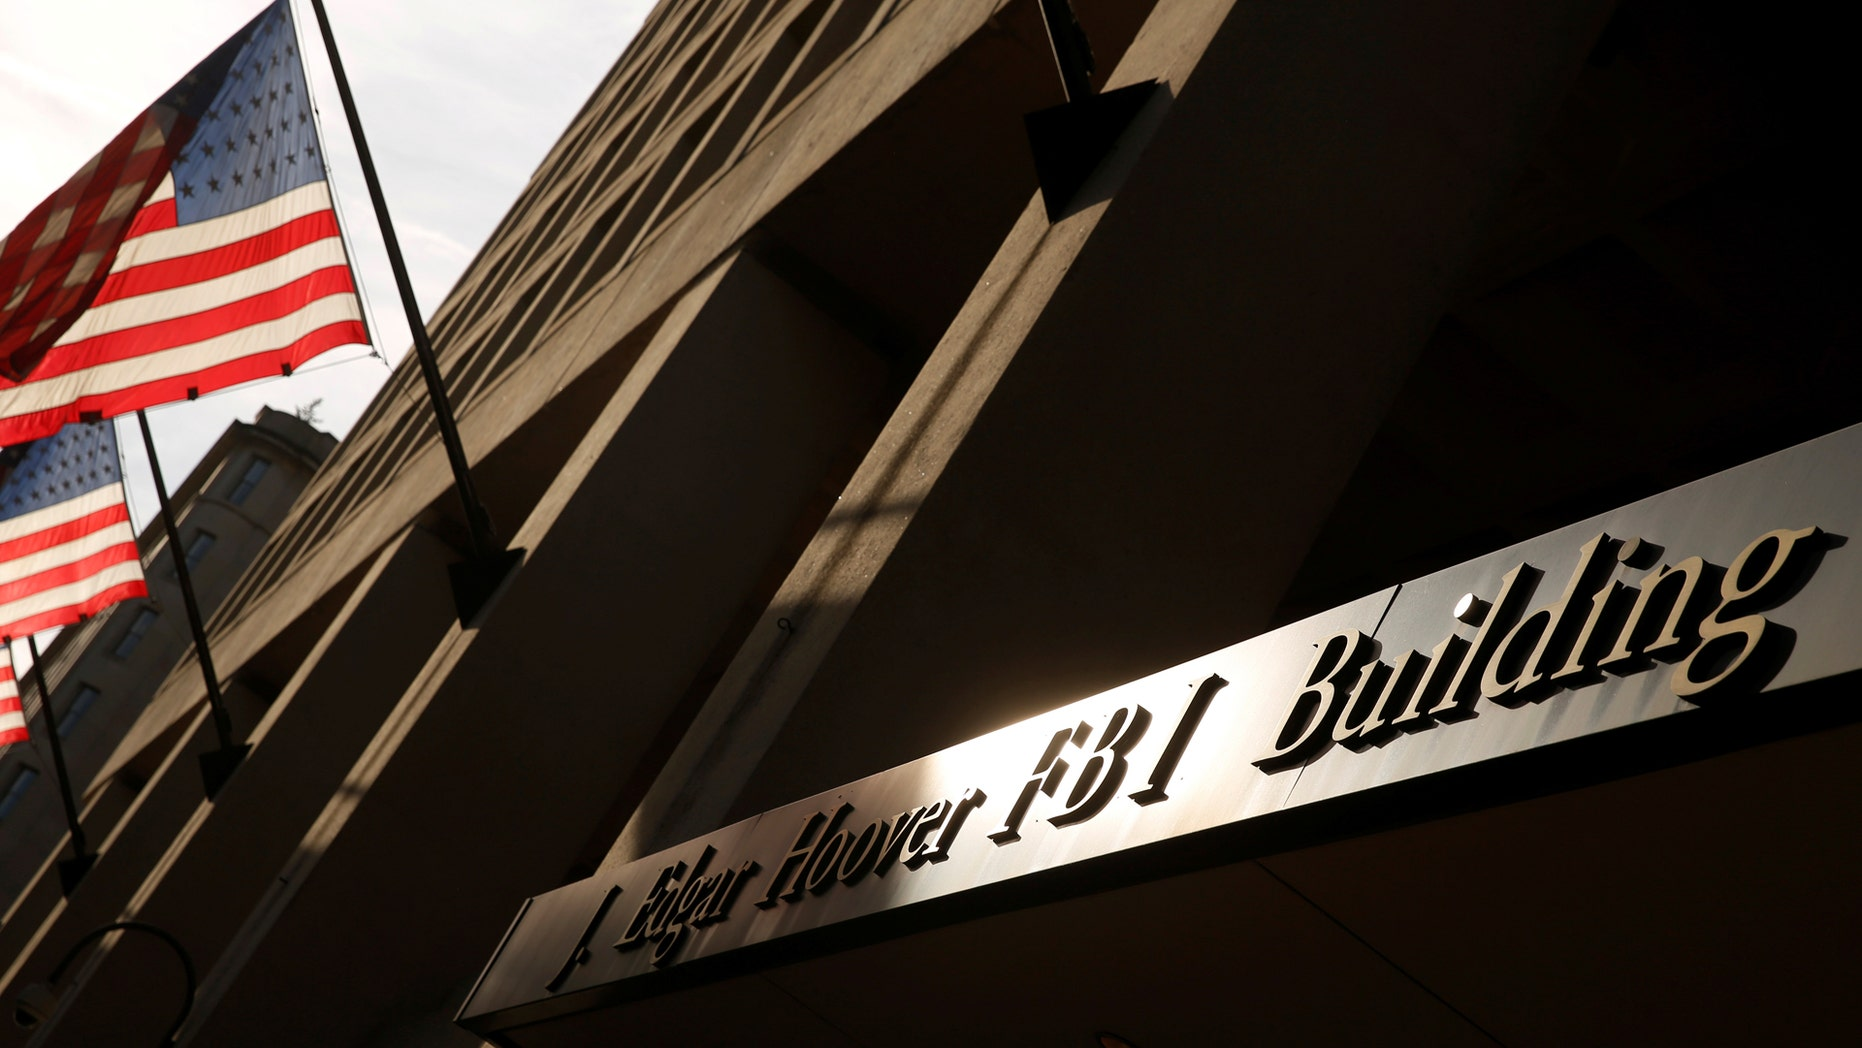 File photo: A general view of the Federal Bureau of Investigation (FBI) building in Washington, U.S. May 9, 2017. (REUTERS/Jonathan Ernst)